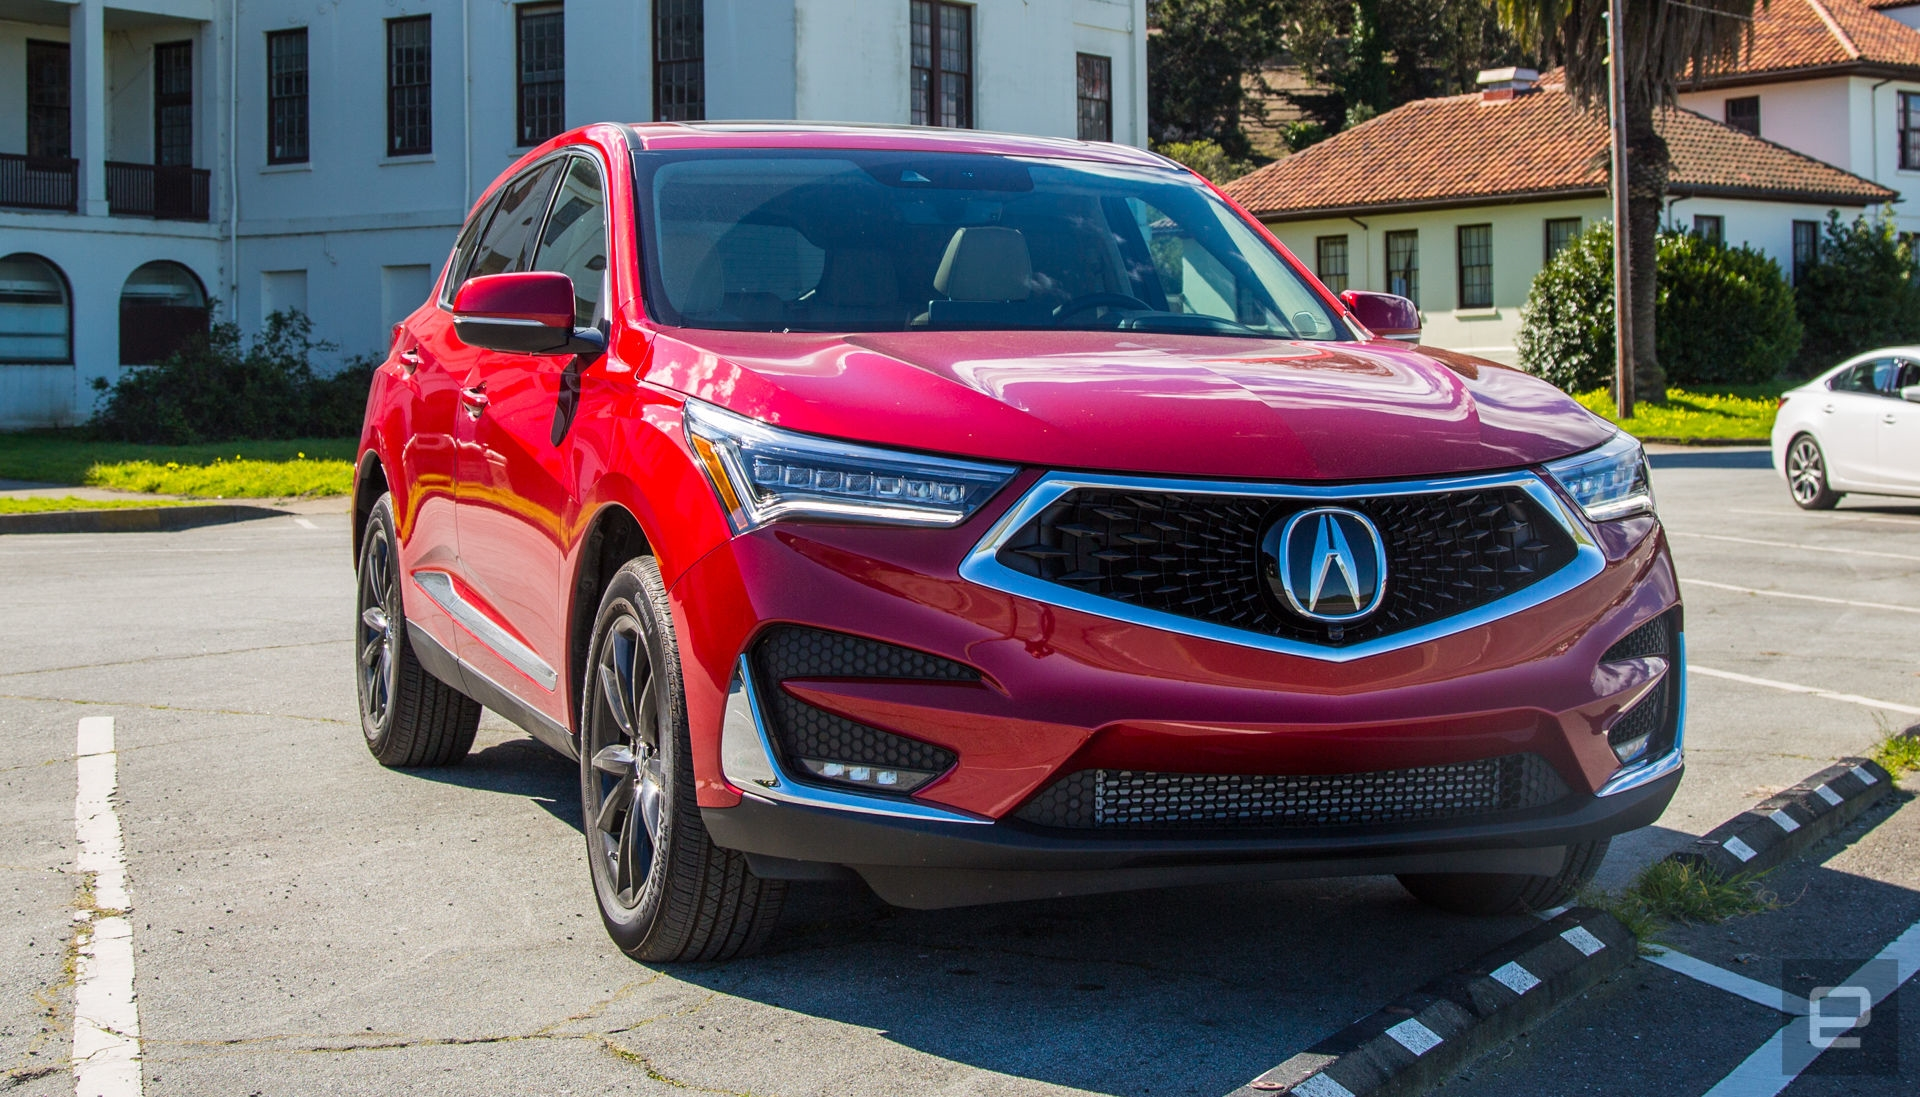 Acura guns for the sports luxury SUV market with the RDX | DeviceDaily.com